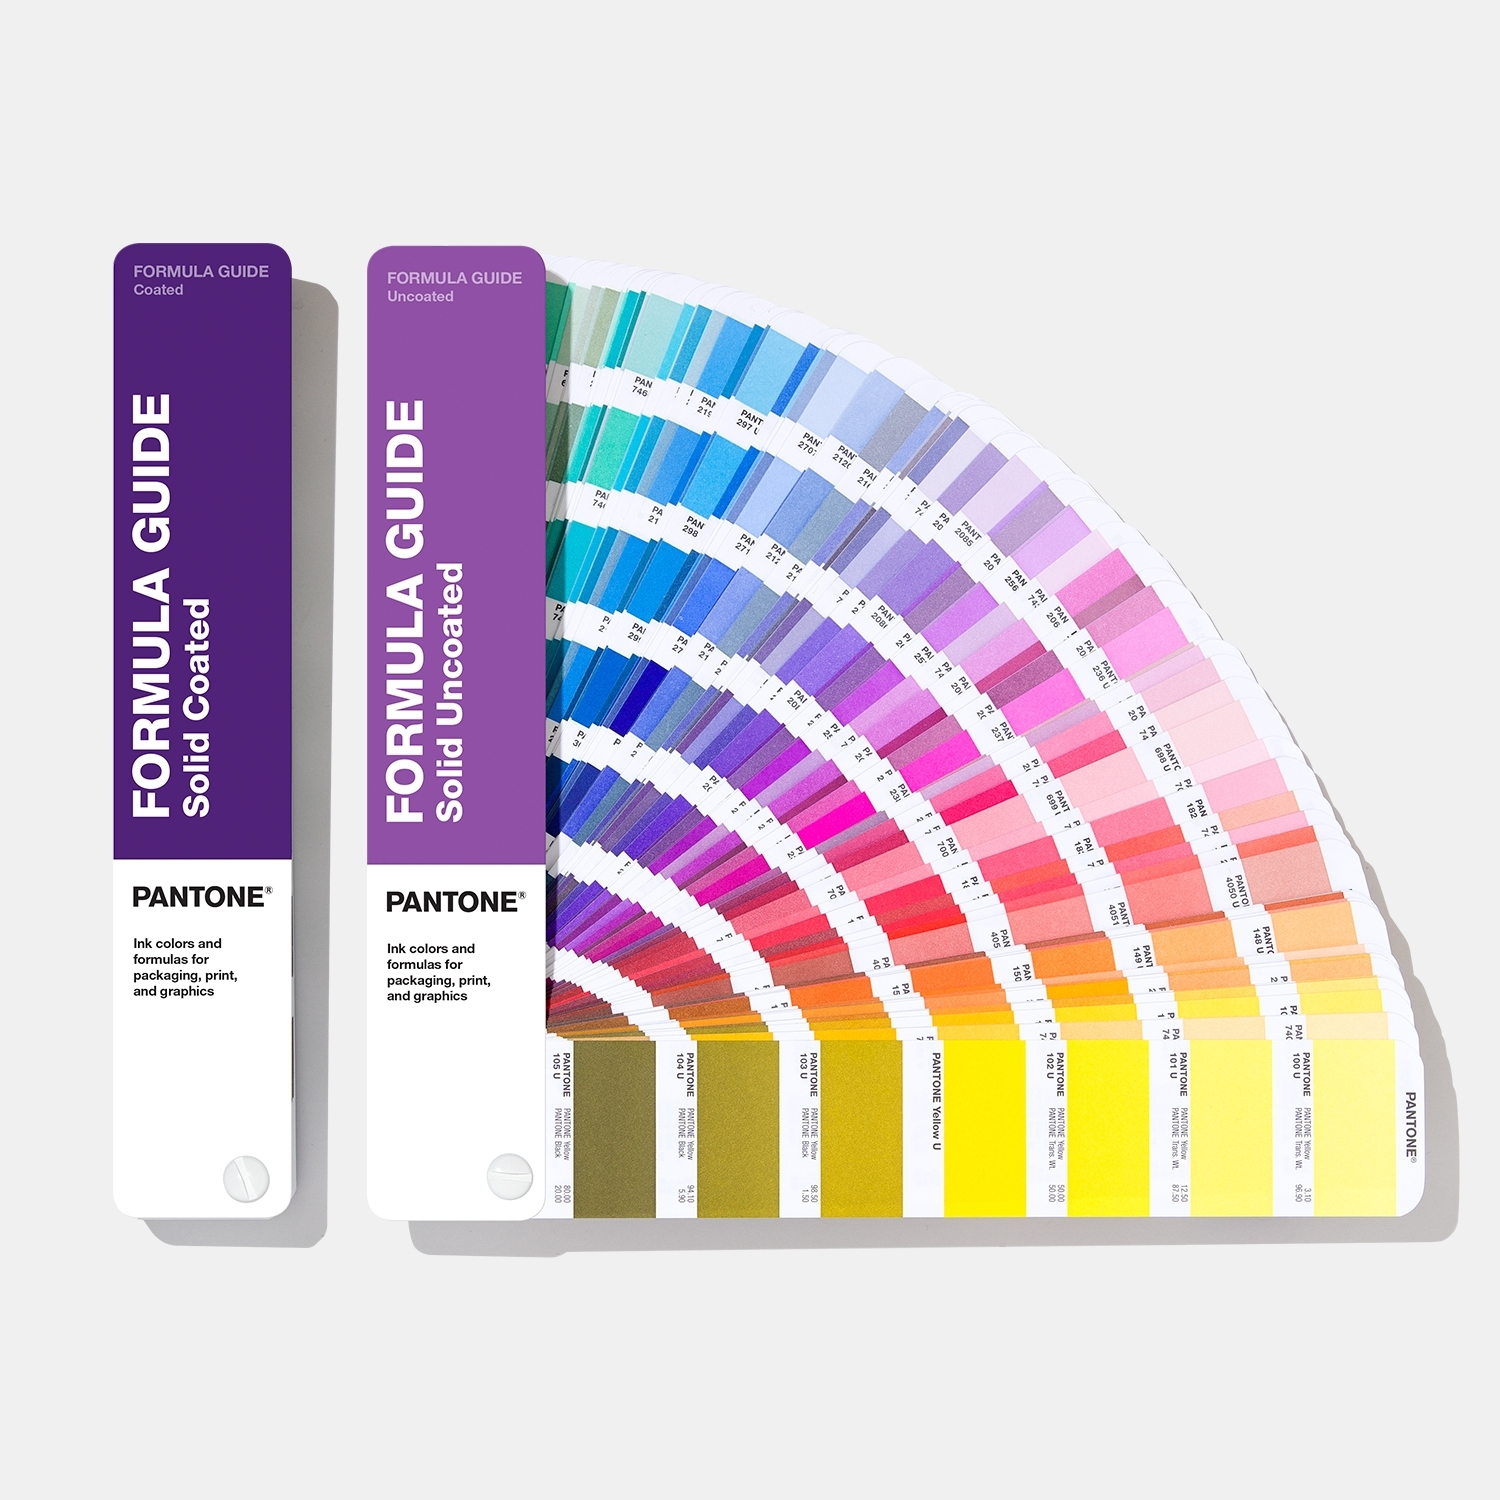 Pantone Formula Guide, Limited Edition Pantone Color of the Year 2018 Ultra Violet - View 1